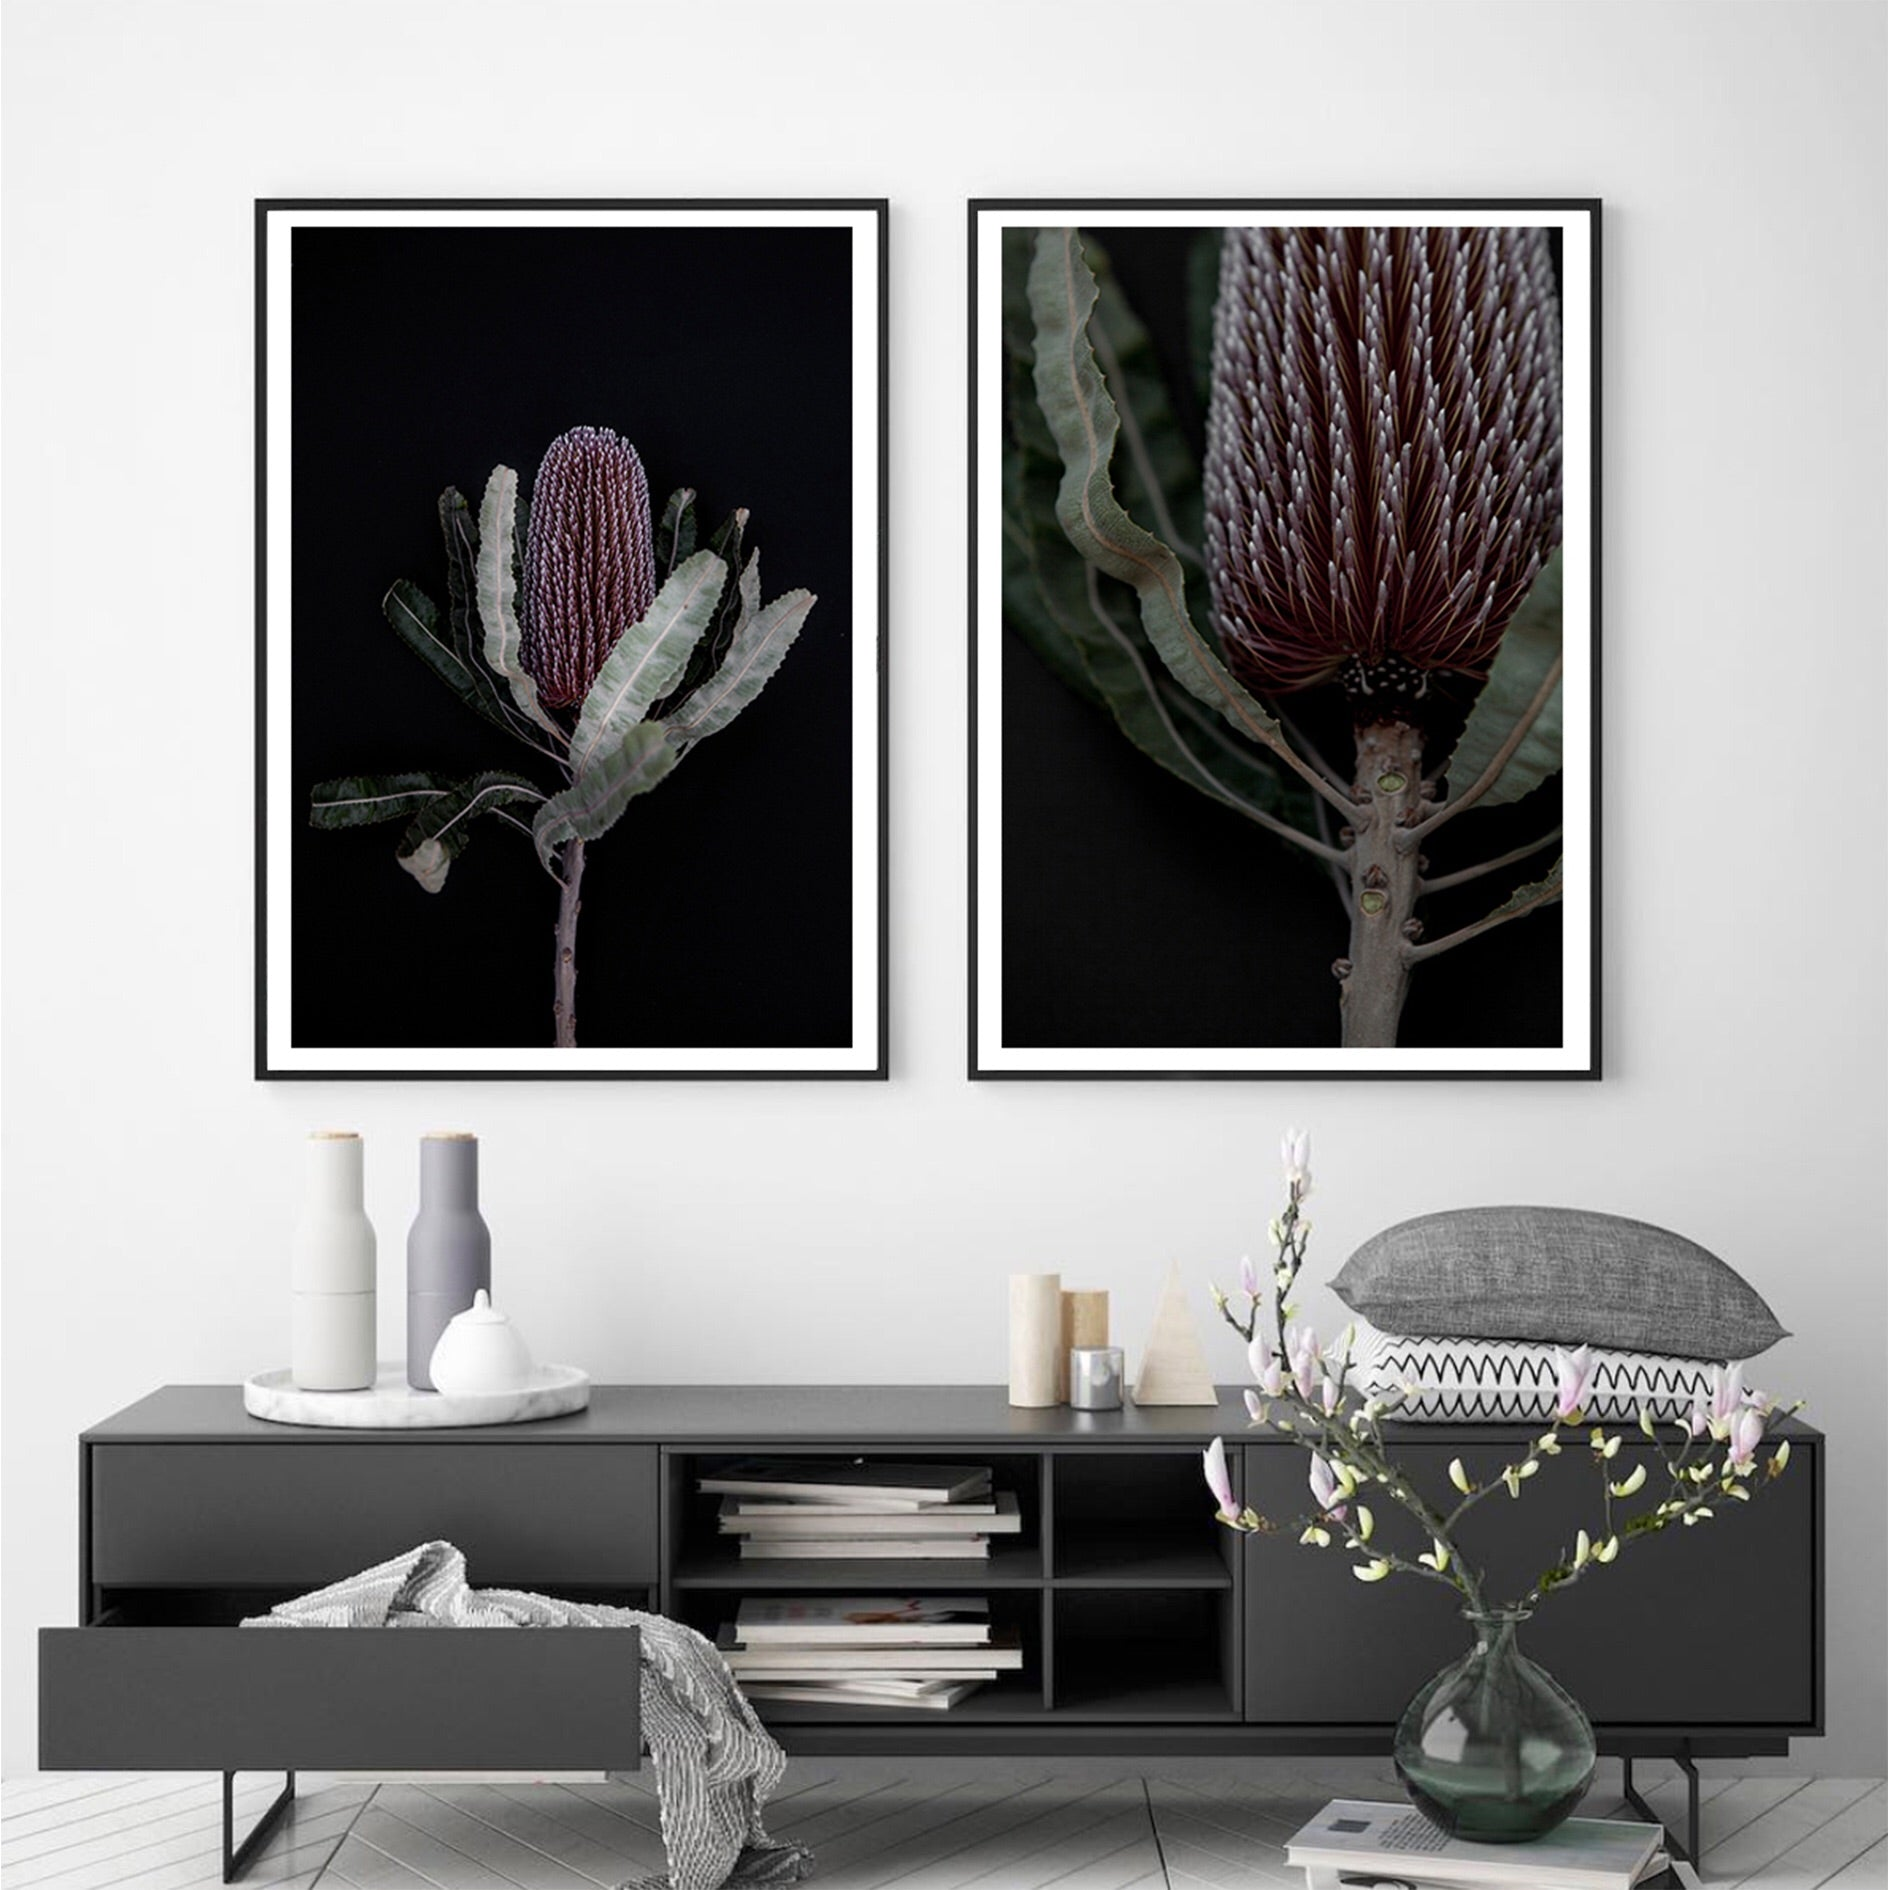 Dark Banksia I - Photographic Print - $39.95 - $129.95 | My House Loves